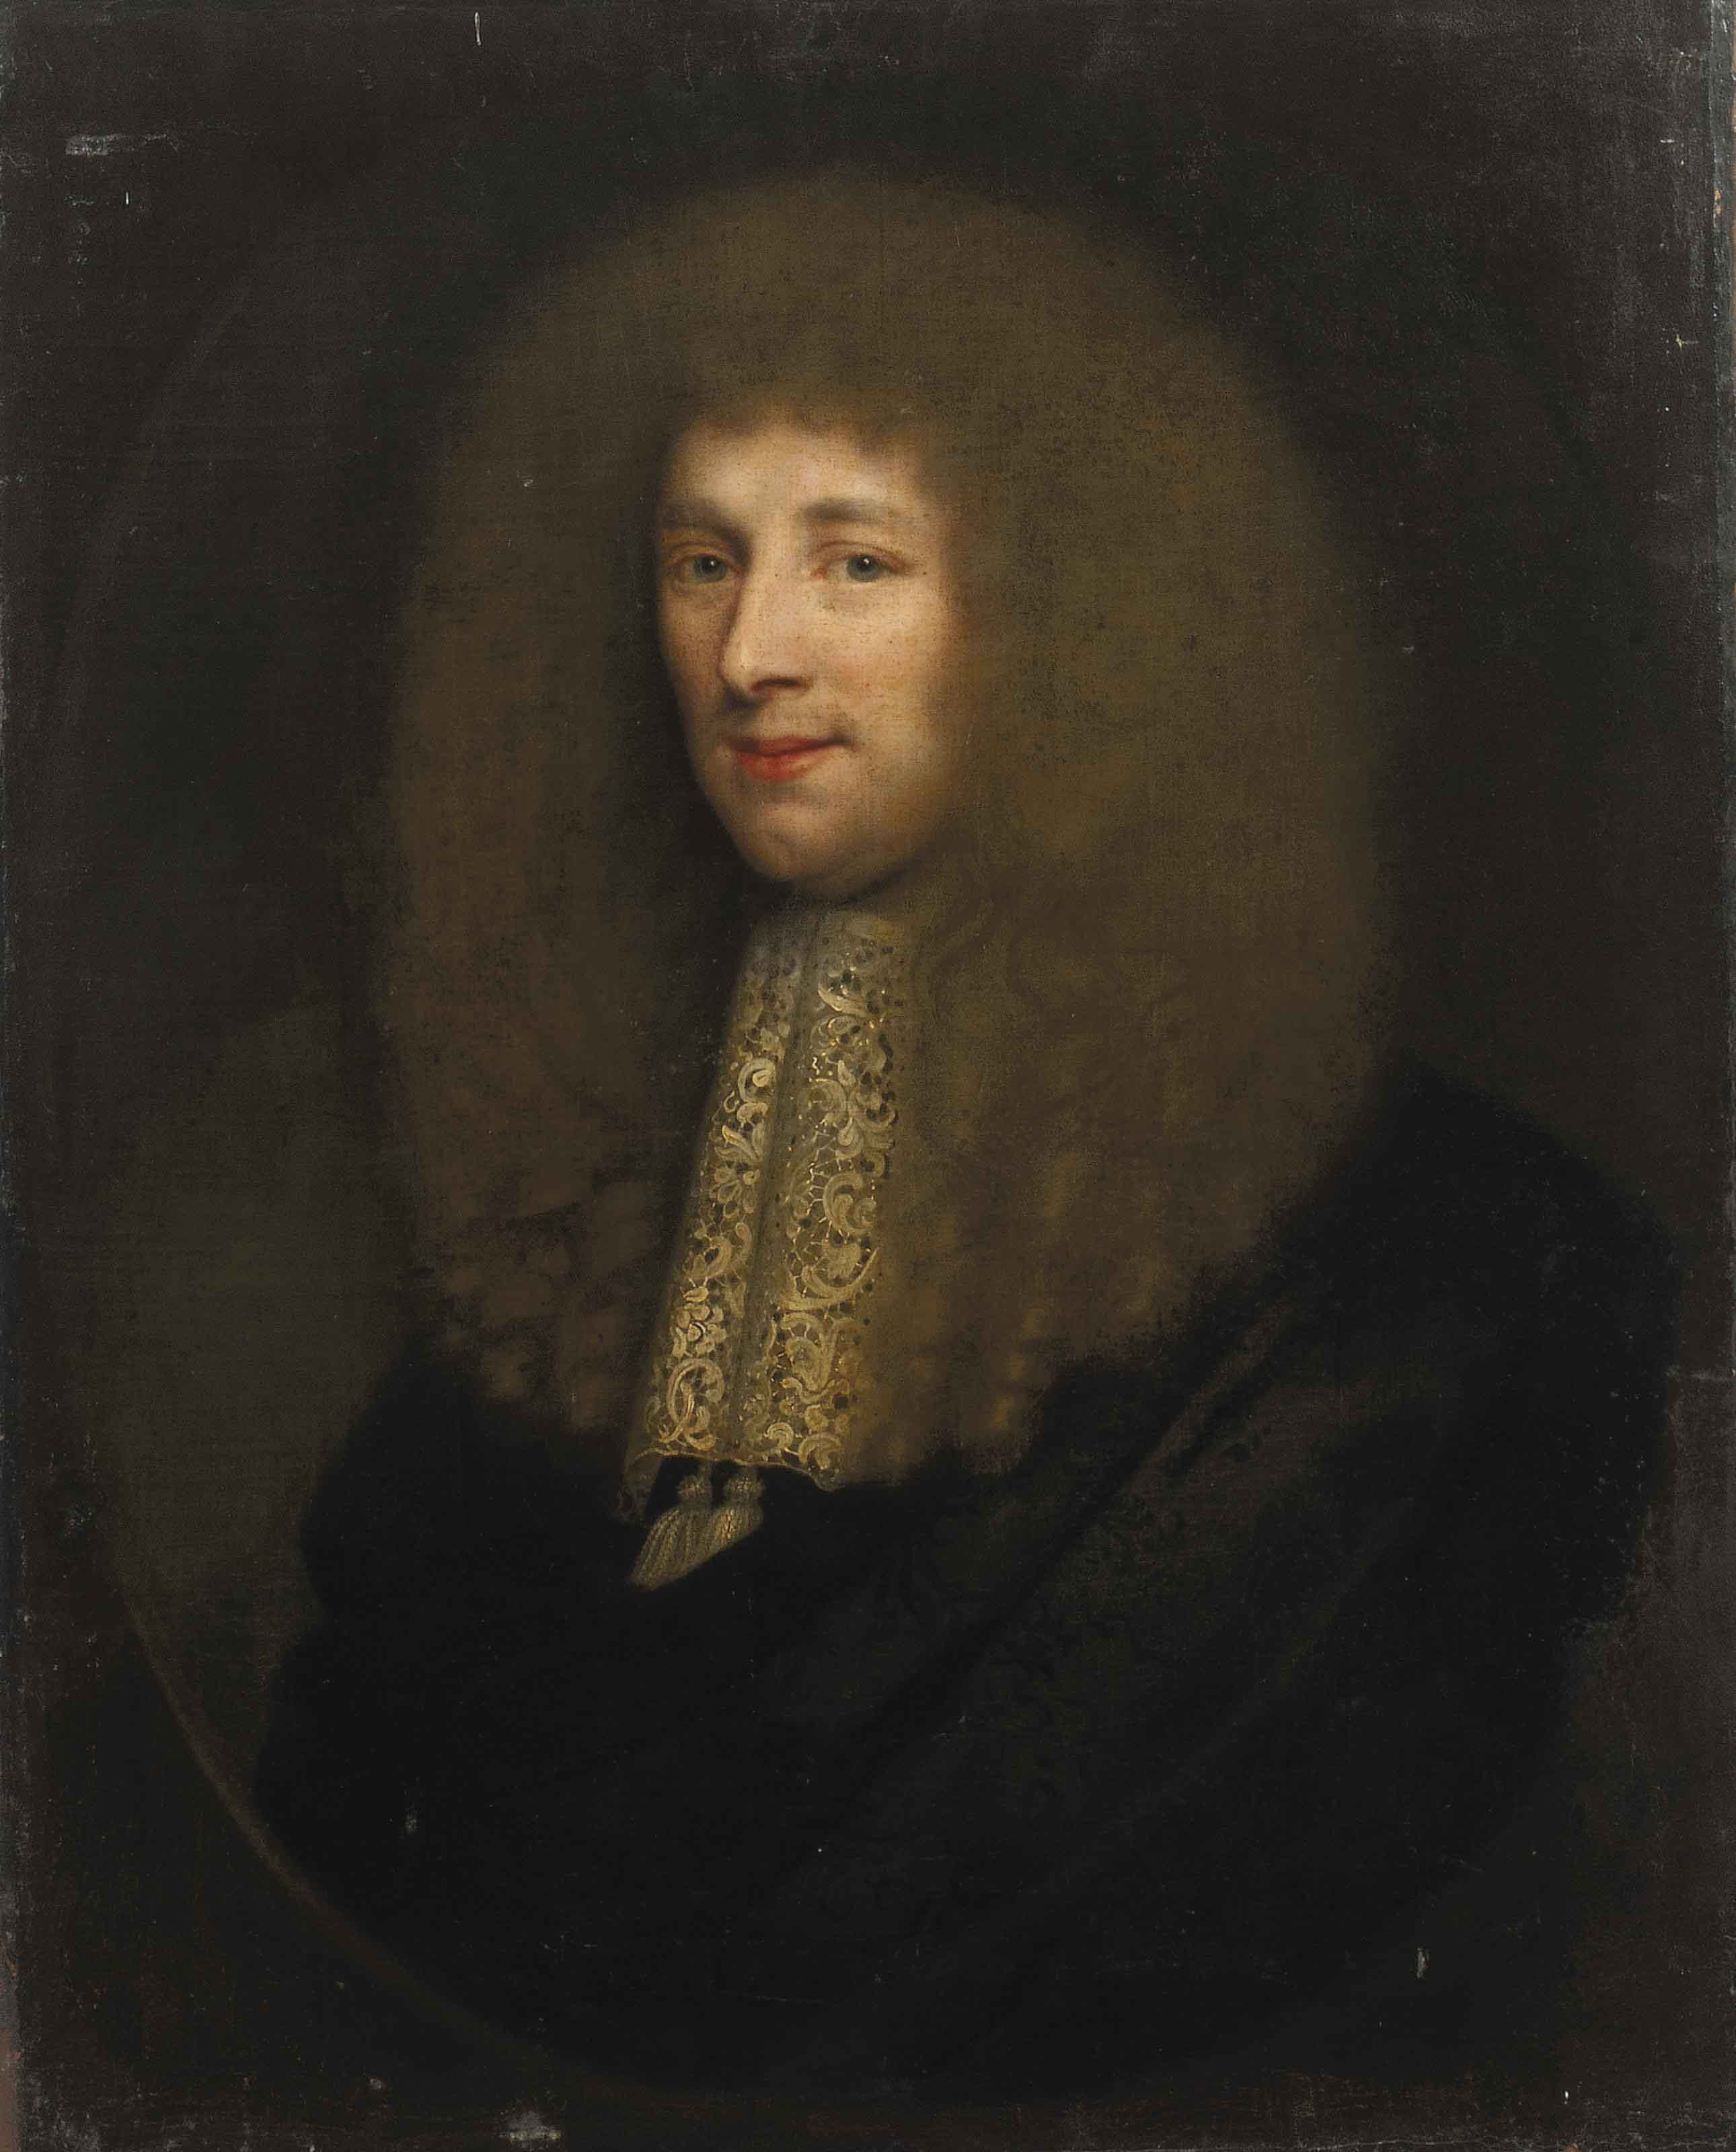 Portrait of gentleman, bust-length, in black robes with a lace jabot, in a sculpted oval